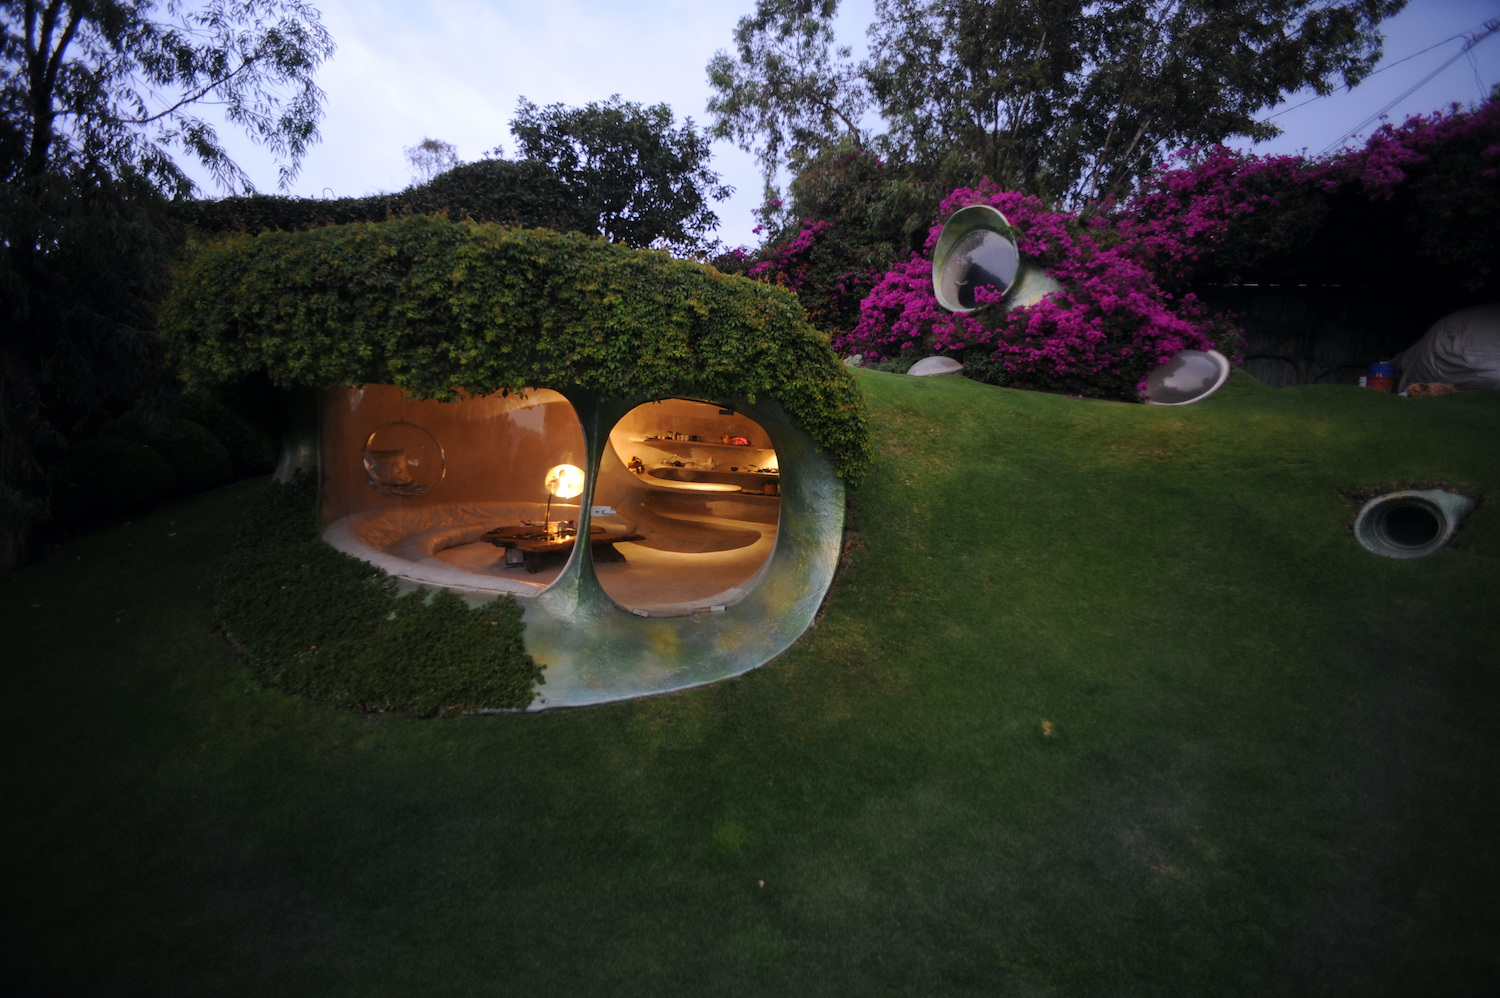 organic home in the shape of nutshell surrounded with green plants